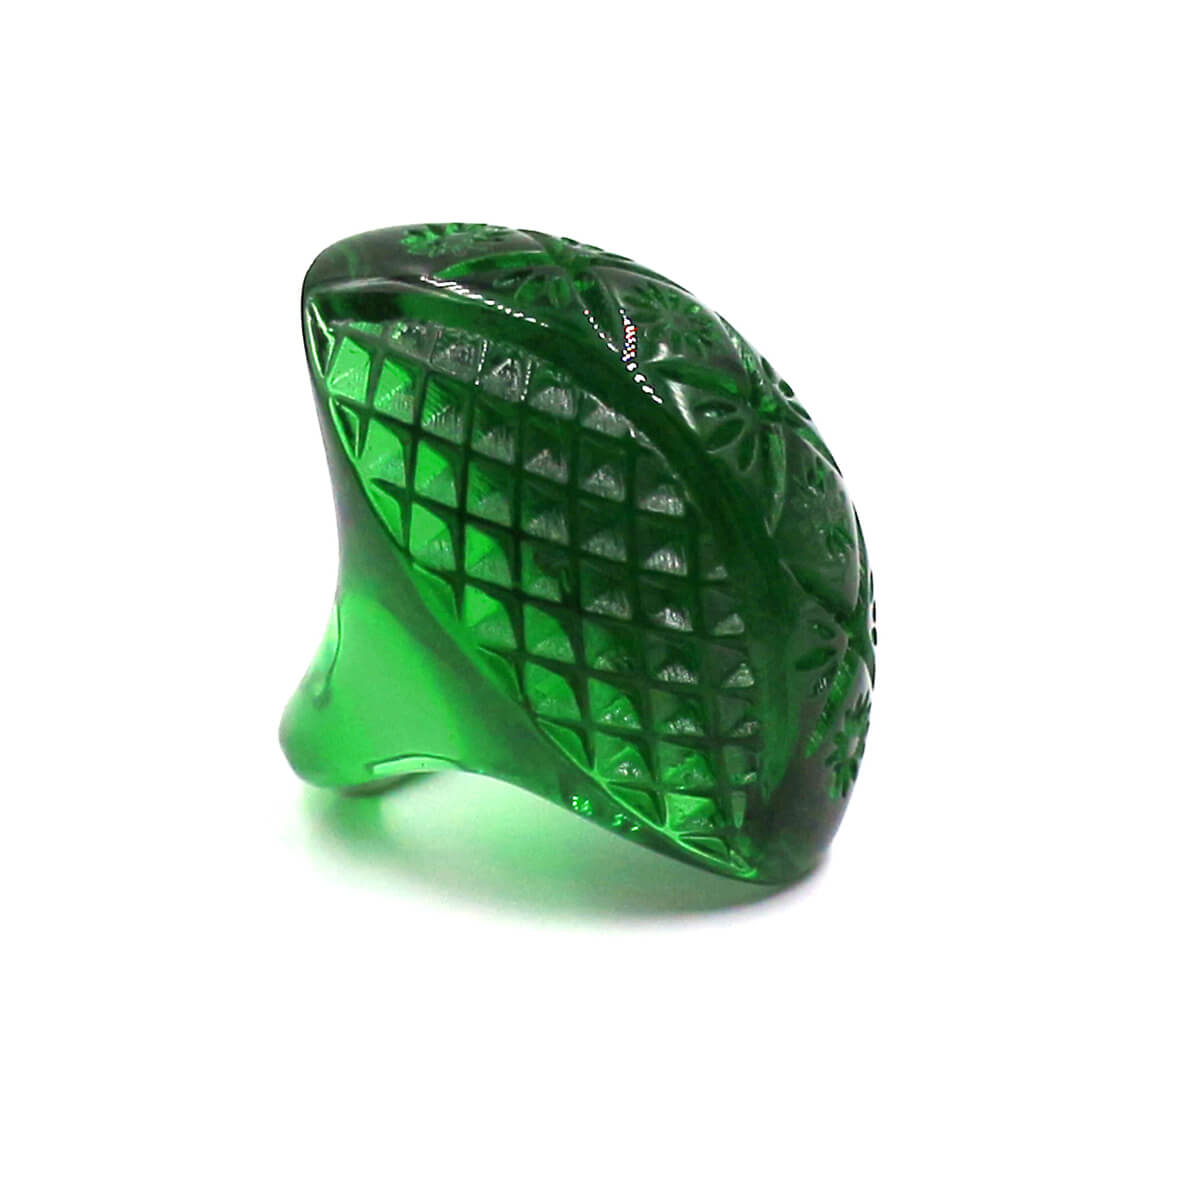 douglaspoon hand carved and polished resin ring in emerald green